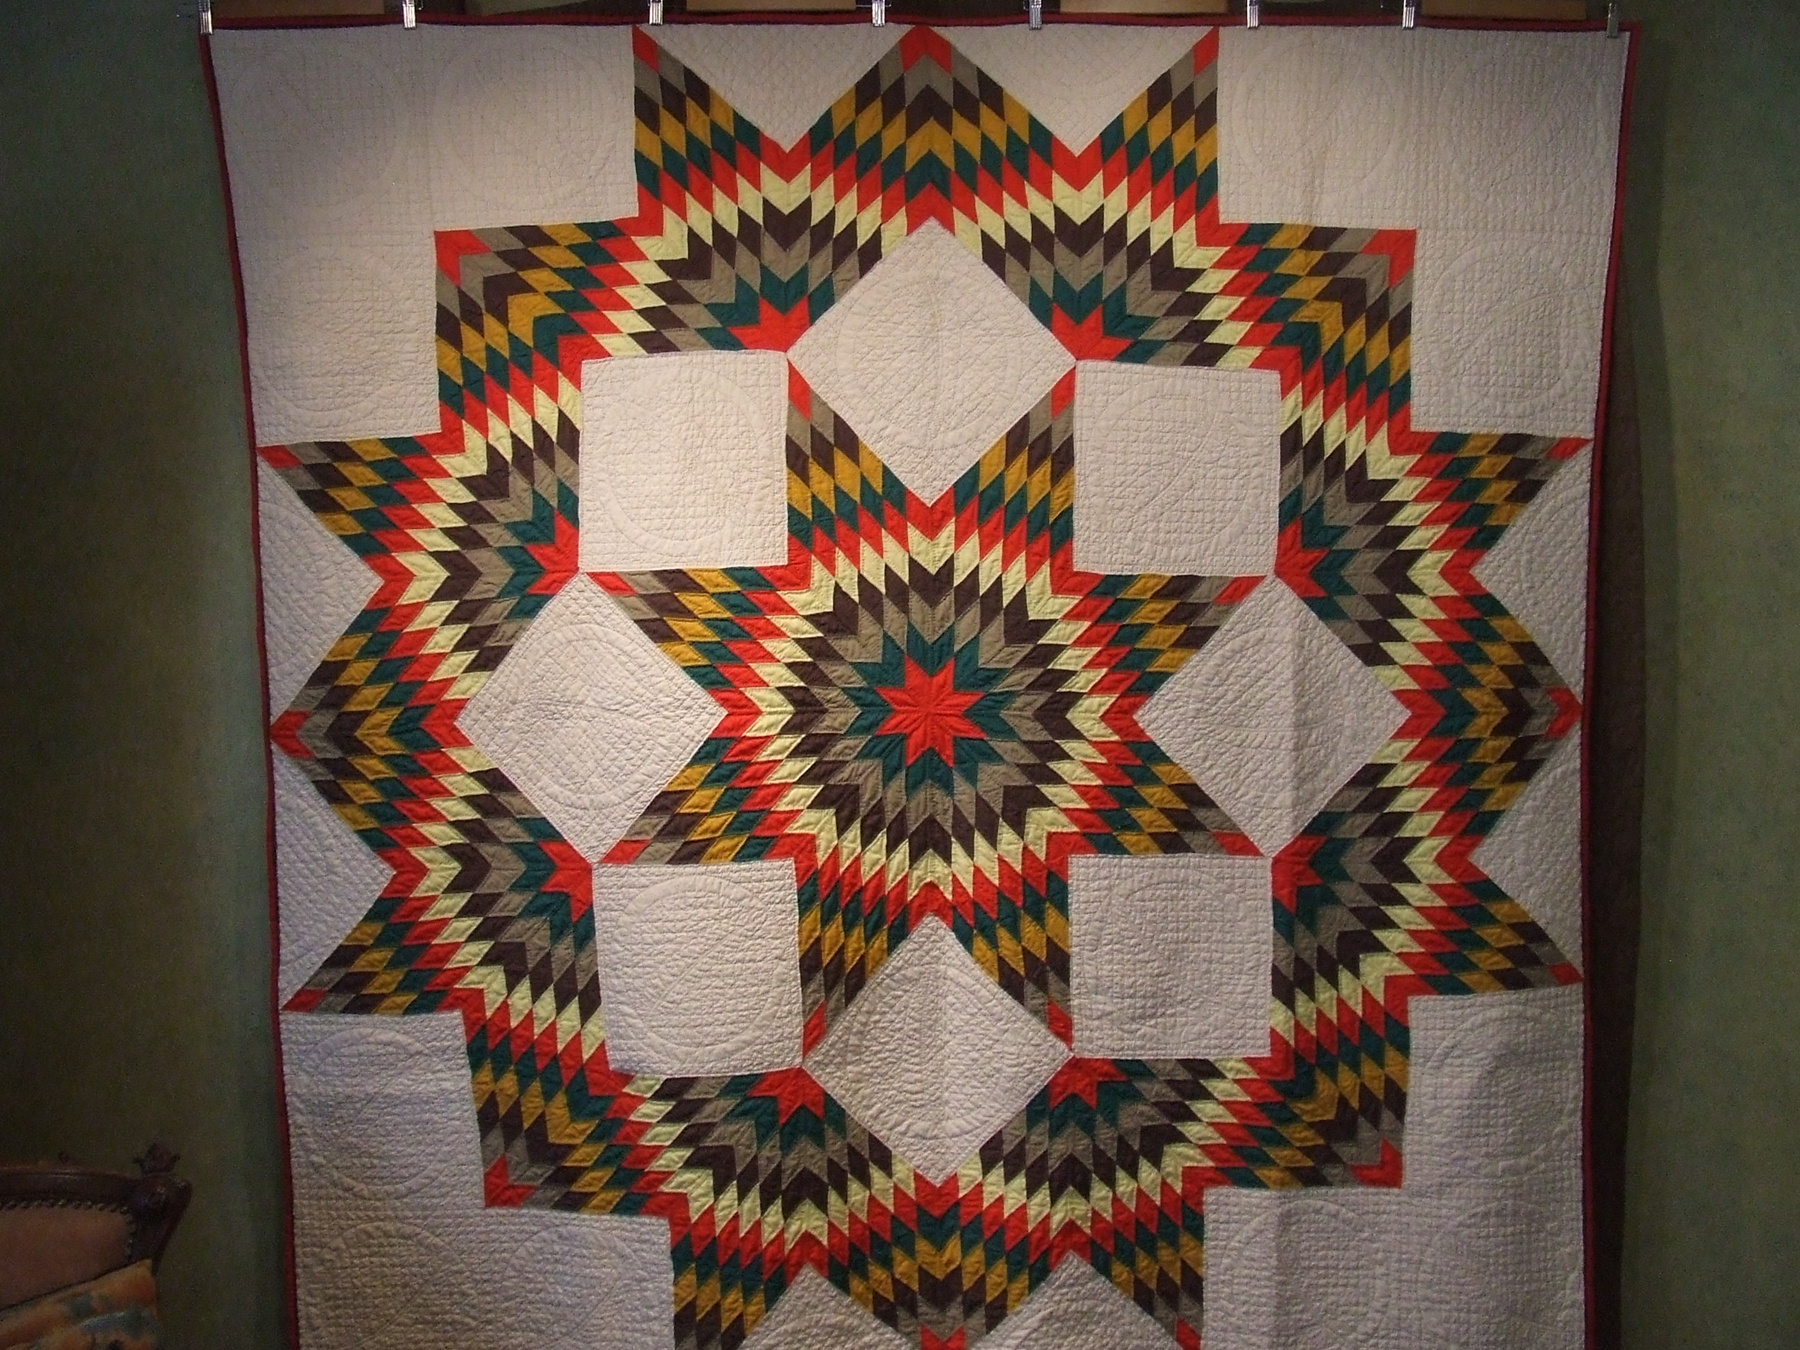 Fabric and Friends at the Rocky Mountain Quilt Museum   Tim ... : rocky mountain quilt museum - Adamdwight.com